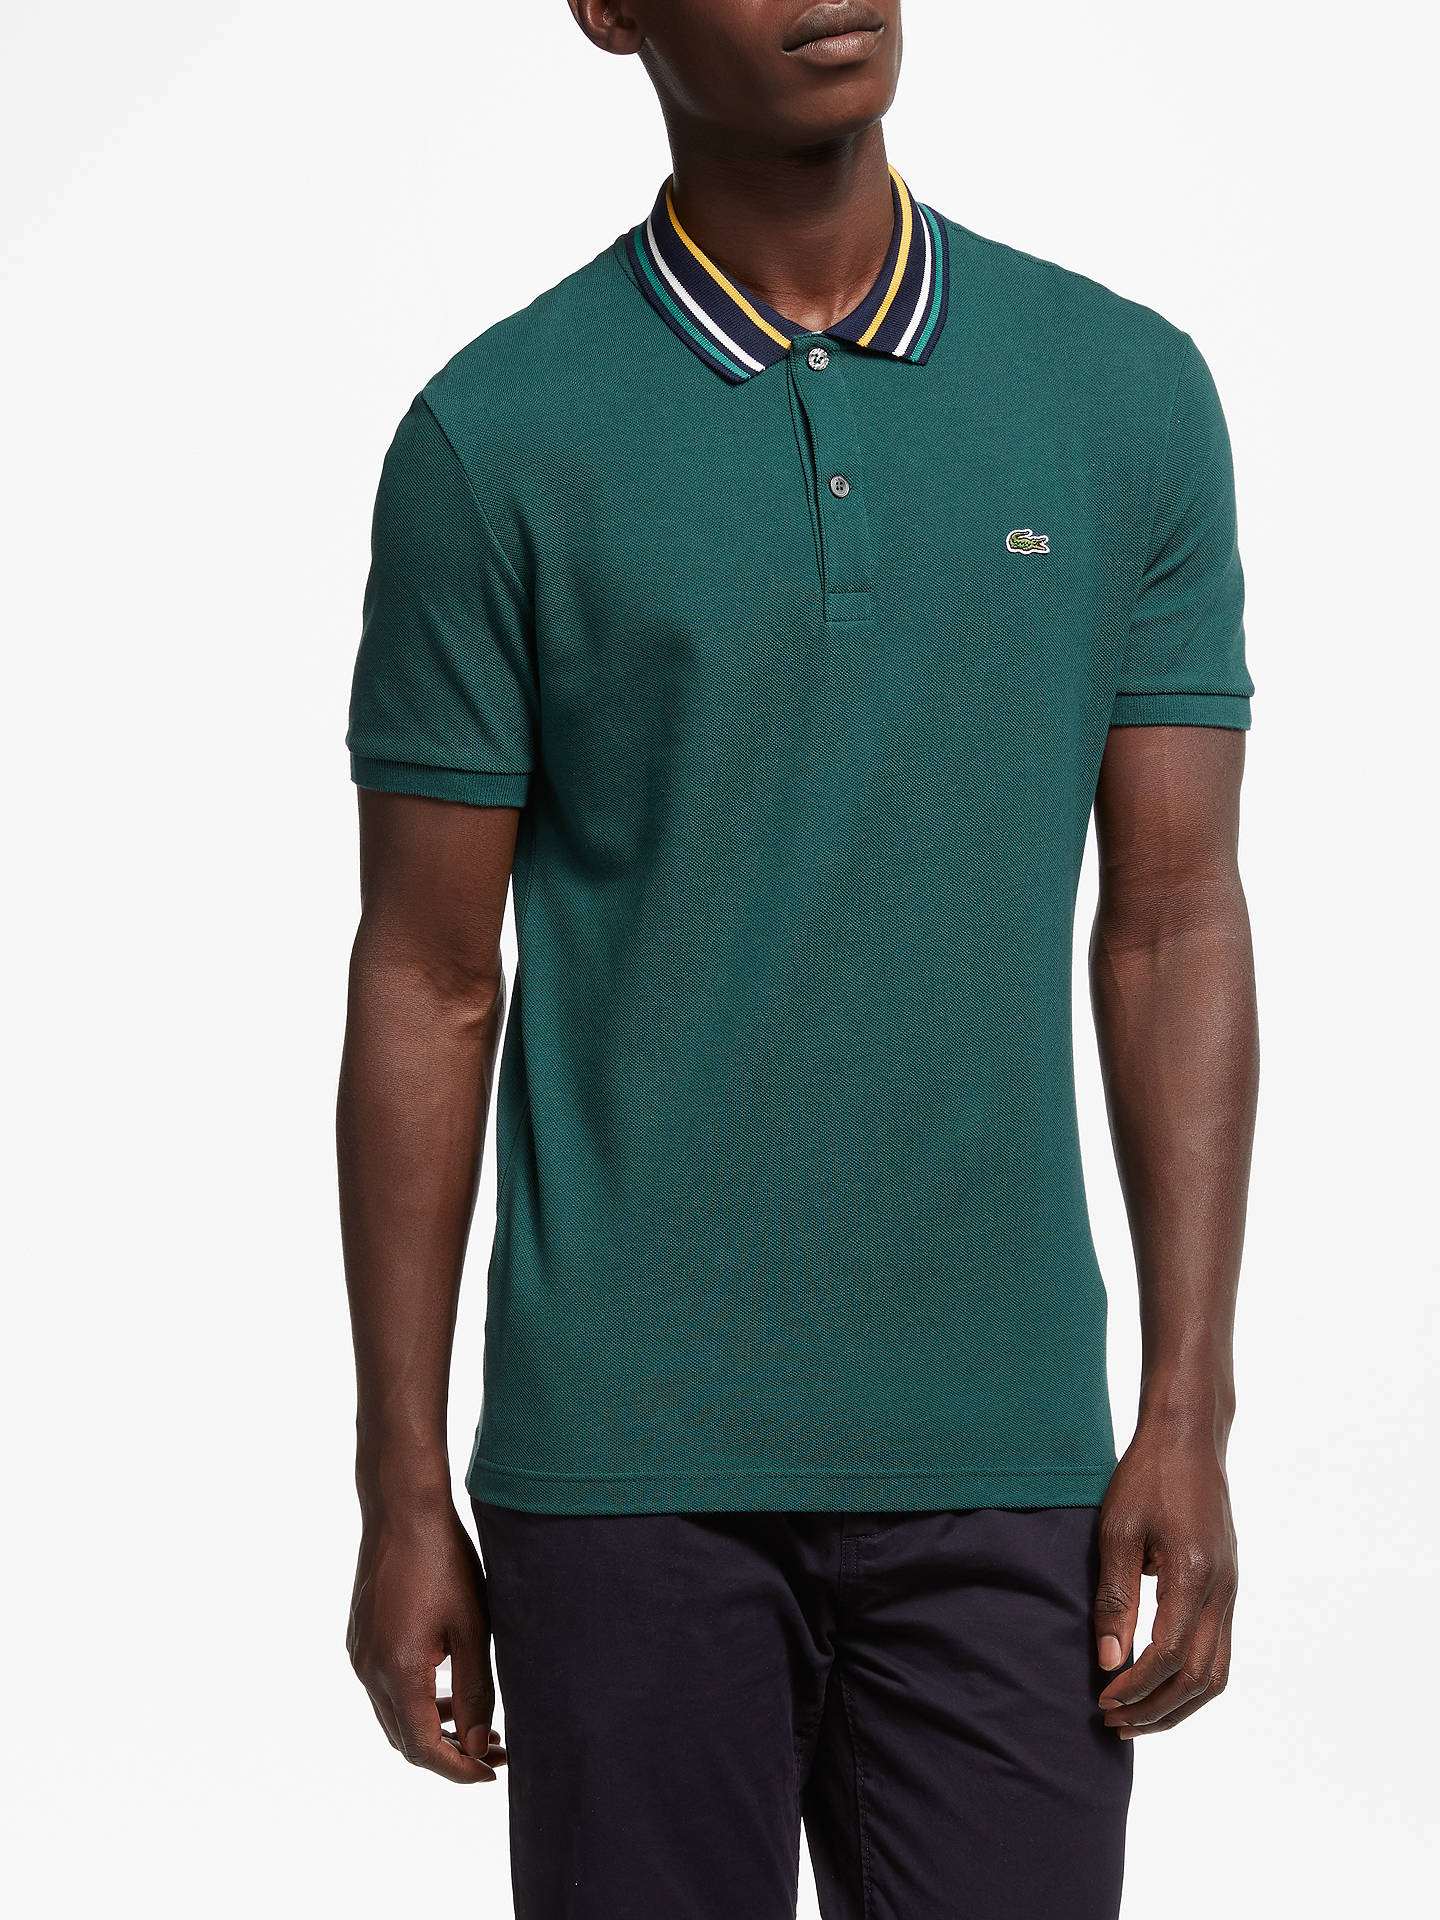 741acedb Buy Lacoste Triple Tipped Short Sleeve Polo Shirt, Green, S Online at  johnlewis.